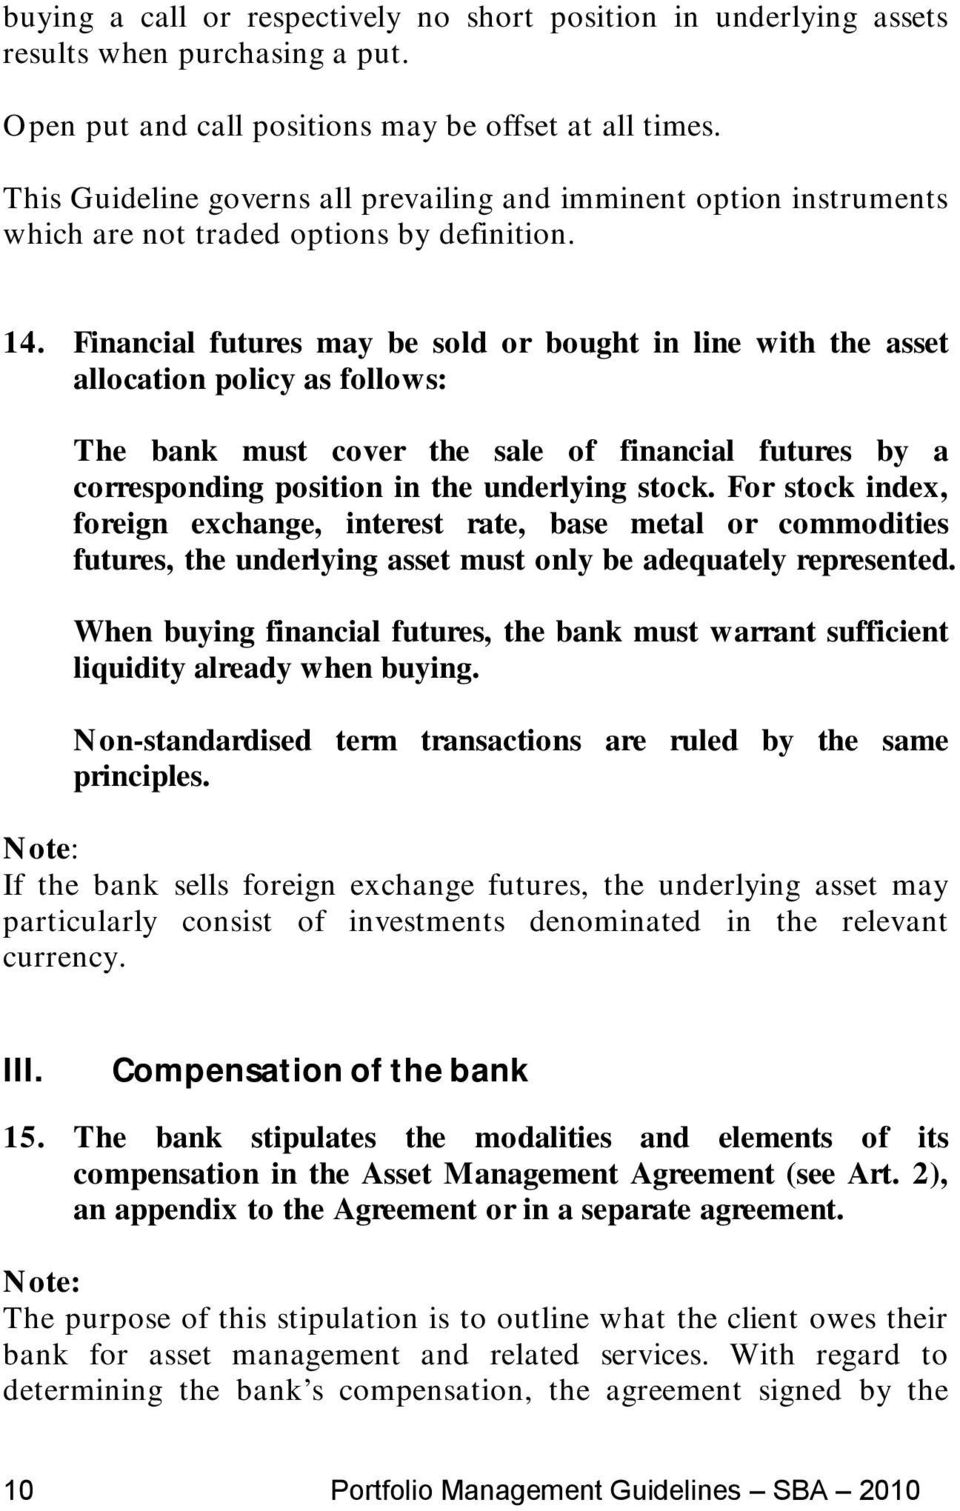 Financial futures may be sold or bought in line with the asset allocation policy as follows: The bank must cover the sale of financial futures by a corresponding position in the underlying stock.